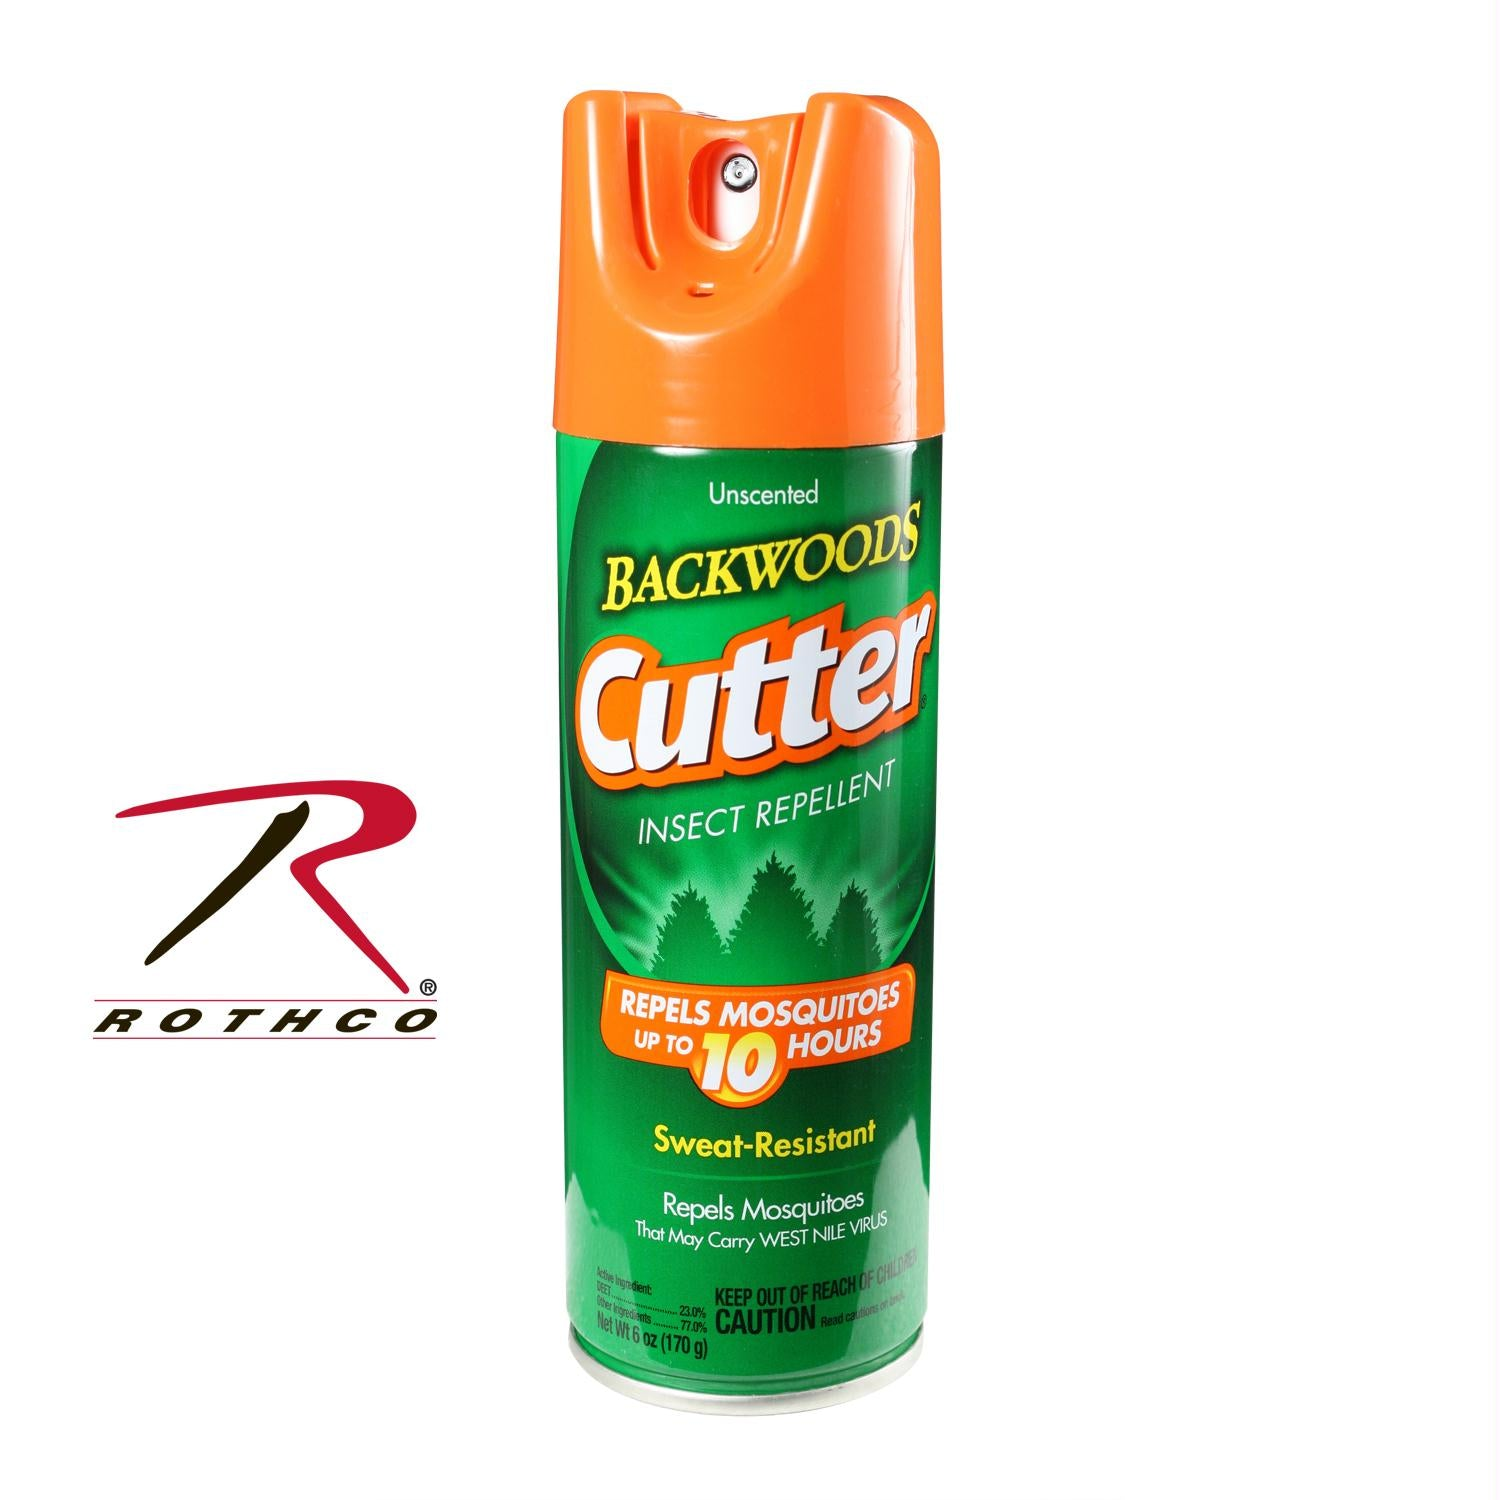 Cutter Unscented Backwoods Insect Repellent